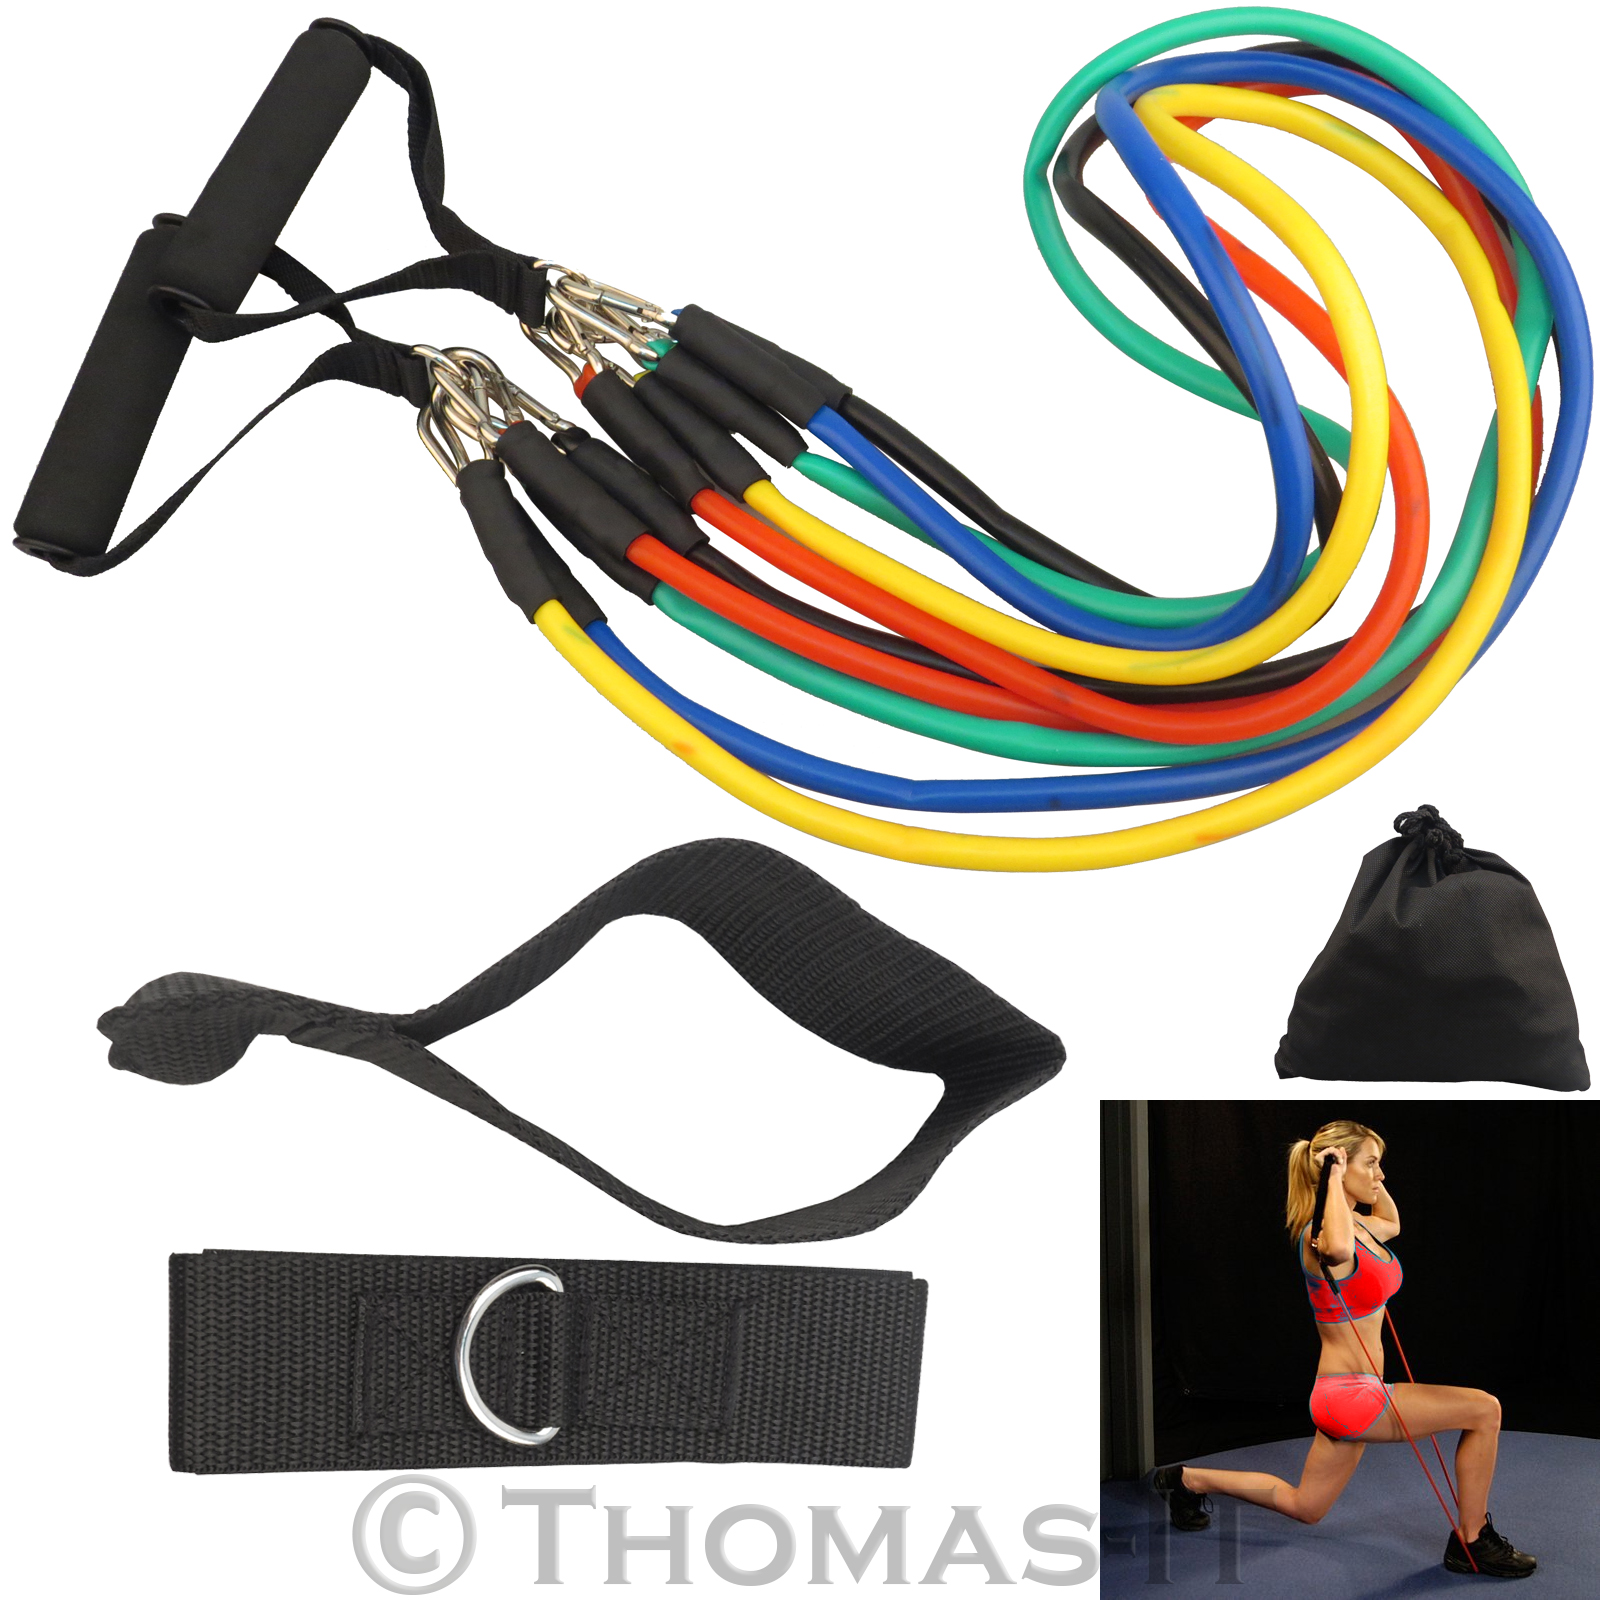 Resistance Bands Uk: Exercise Resistance Bands Set 13 Piece Heavy Duty Yoga